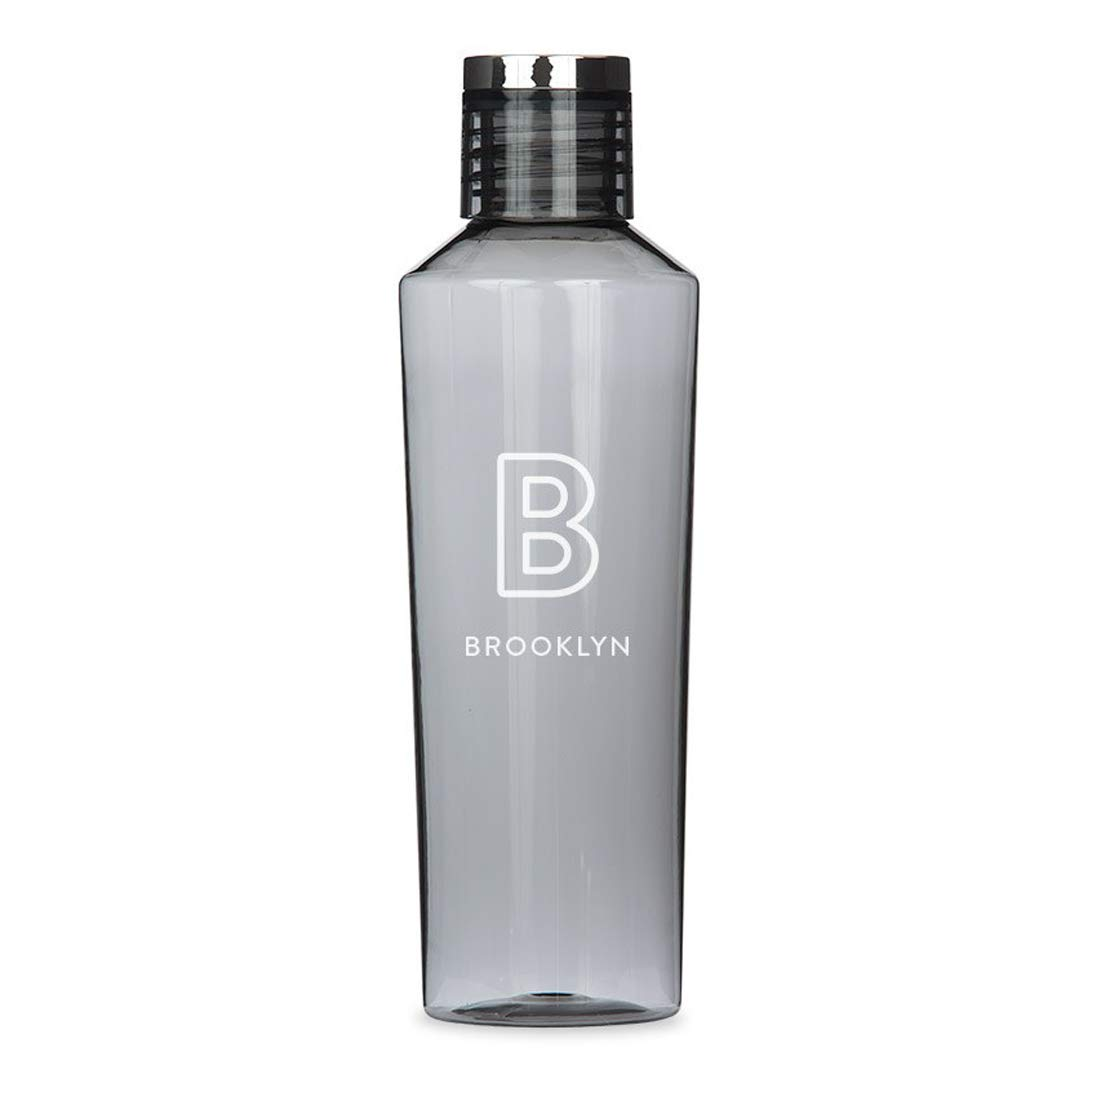 Weddingstar Personalized Tritan Plastic Water Bottle 27oz – Reusable Customizable Eco-Friendly Plastic Water Bottle – 100% BPA-Free Environmentally Friendly Canteen - Line Initial Charcoal